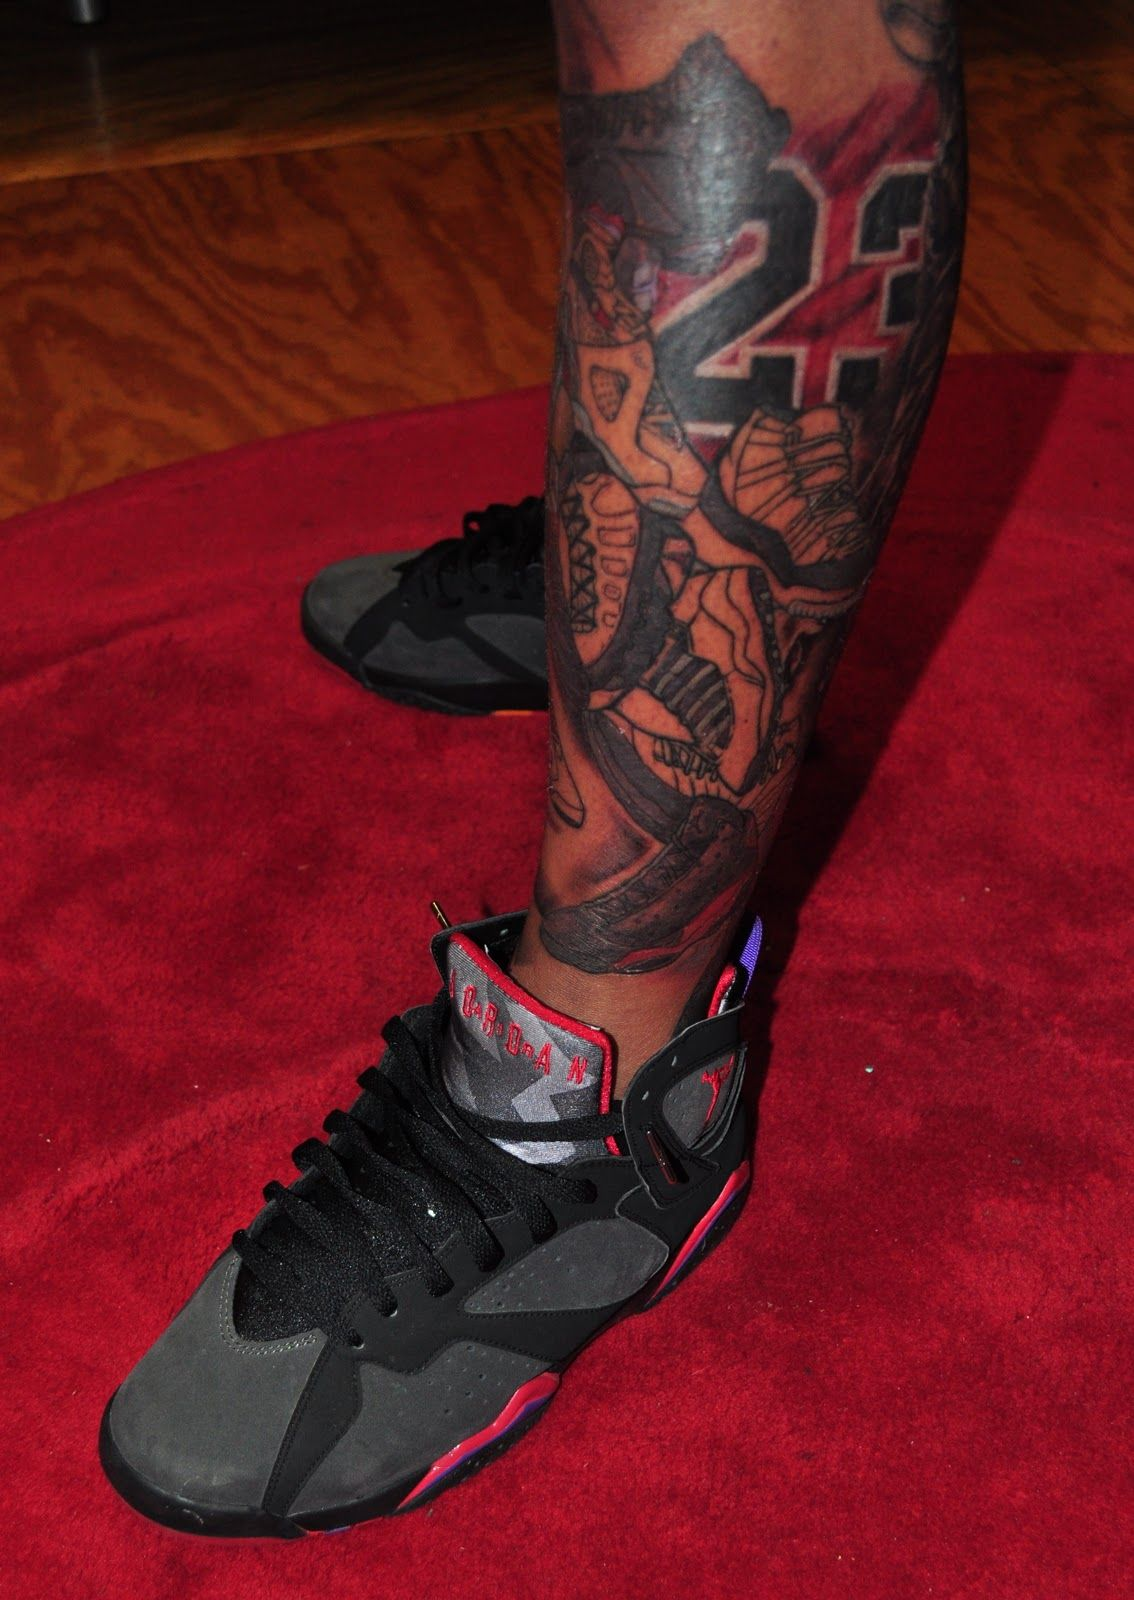 Michael Jordan Tattoo 6 - 15 Michael Jordan Tattoo Fails | Complex AU